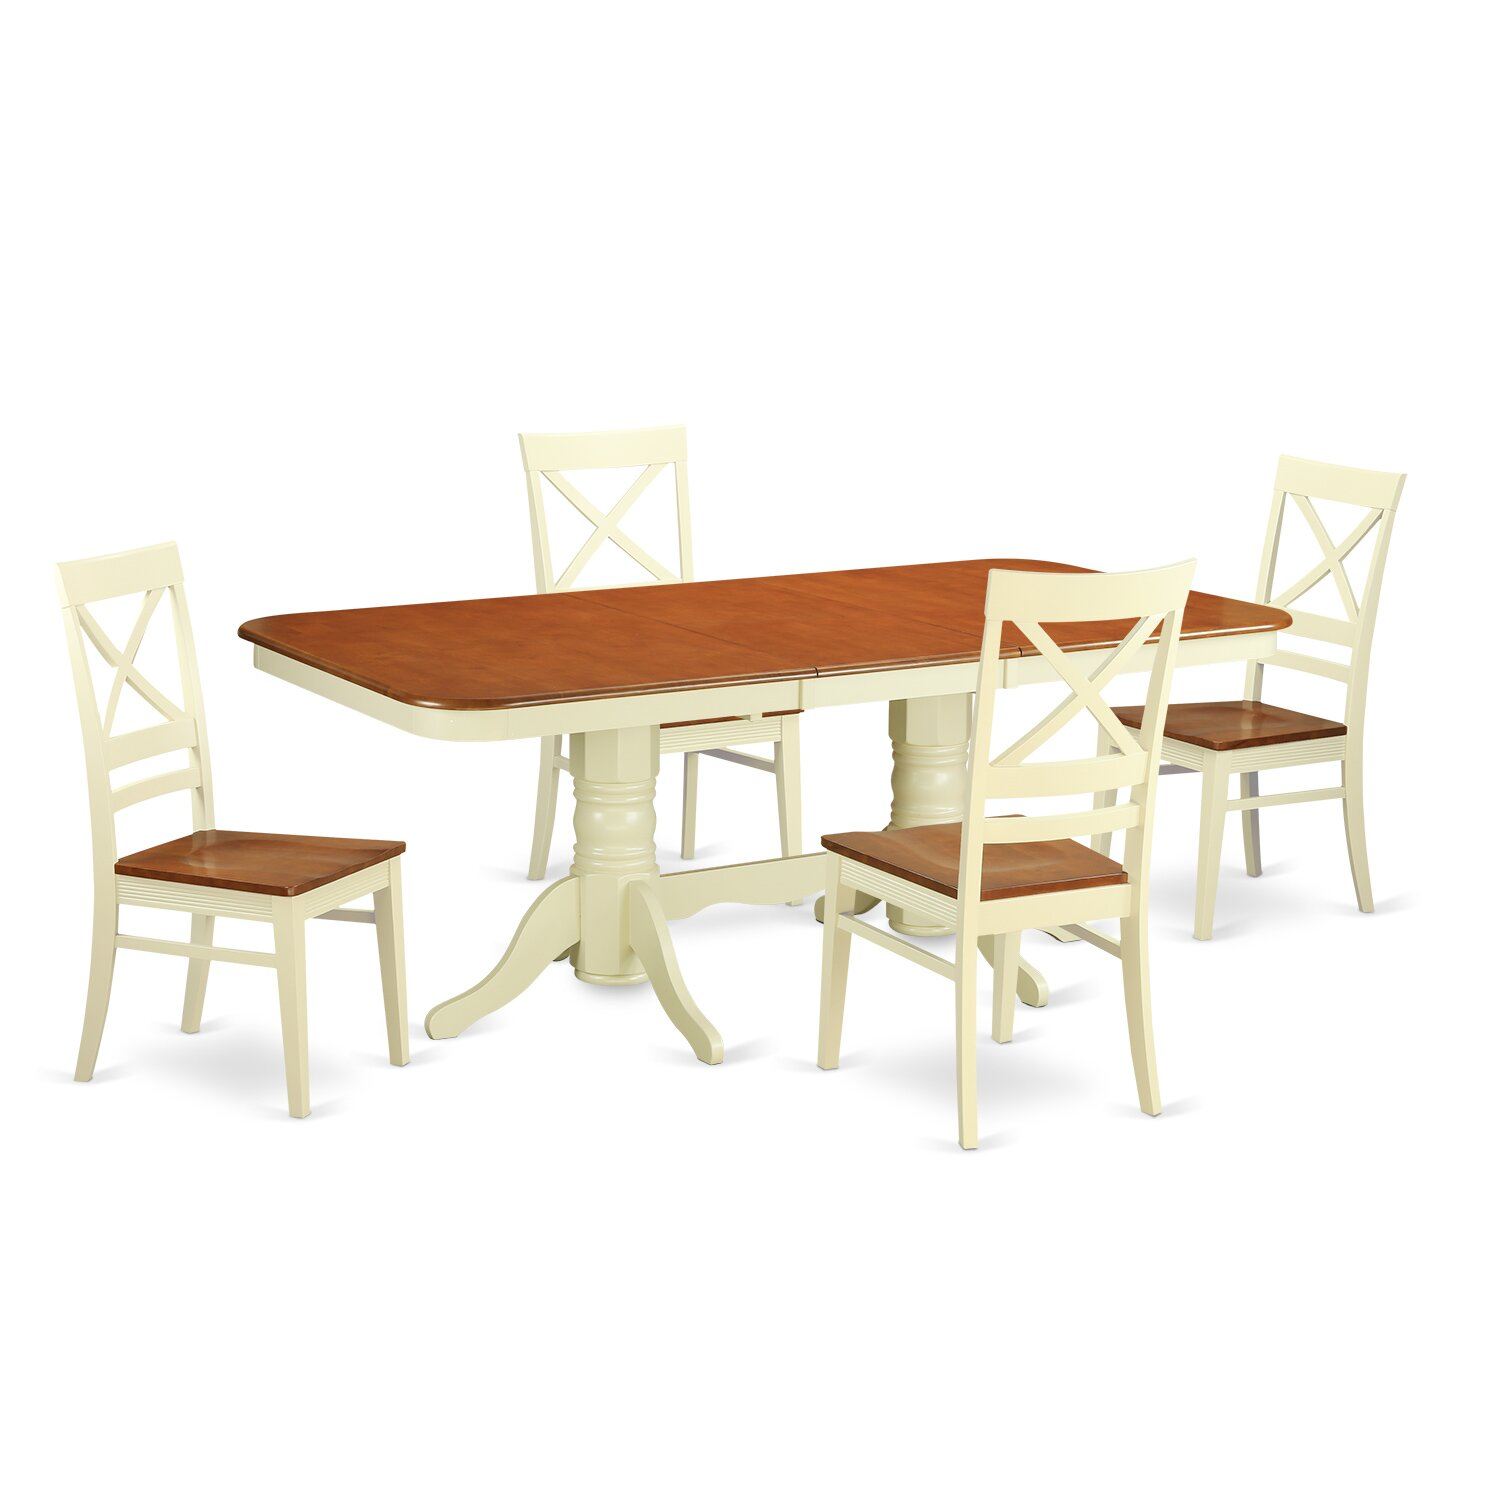 Wooden importers napoleon 5 piece dining set wayfair for Kitchen dining sets